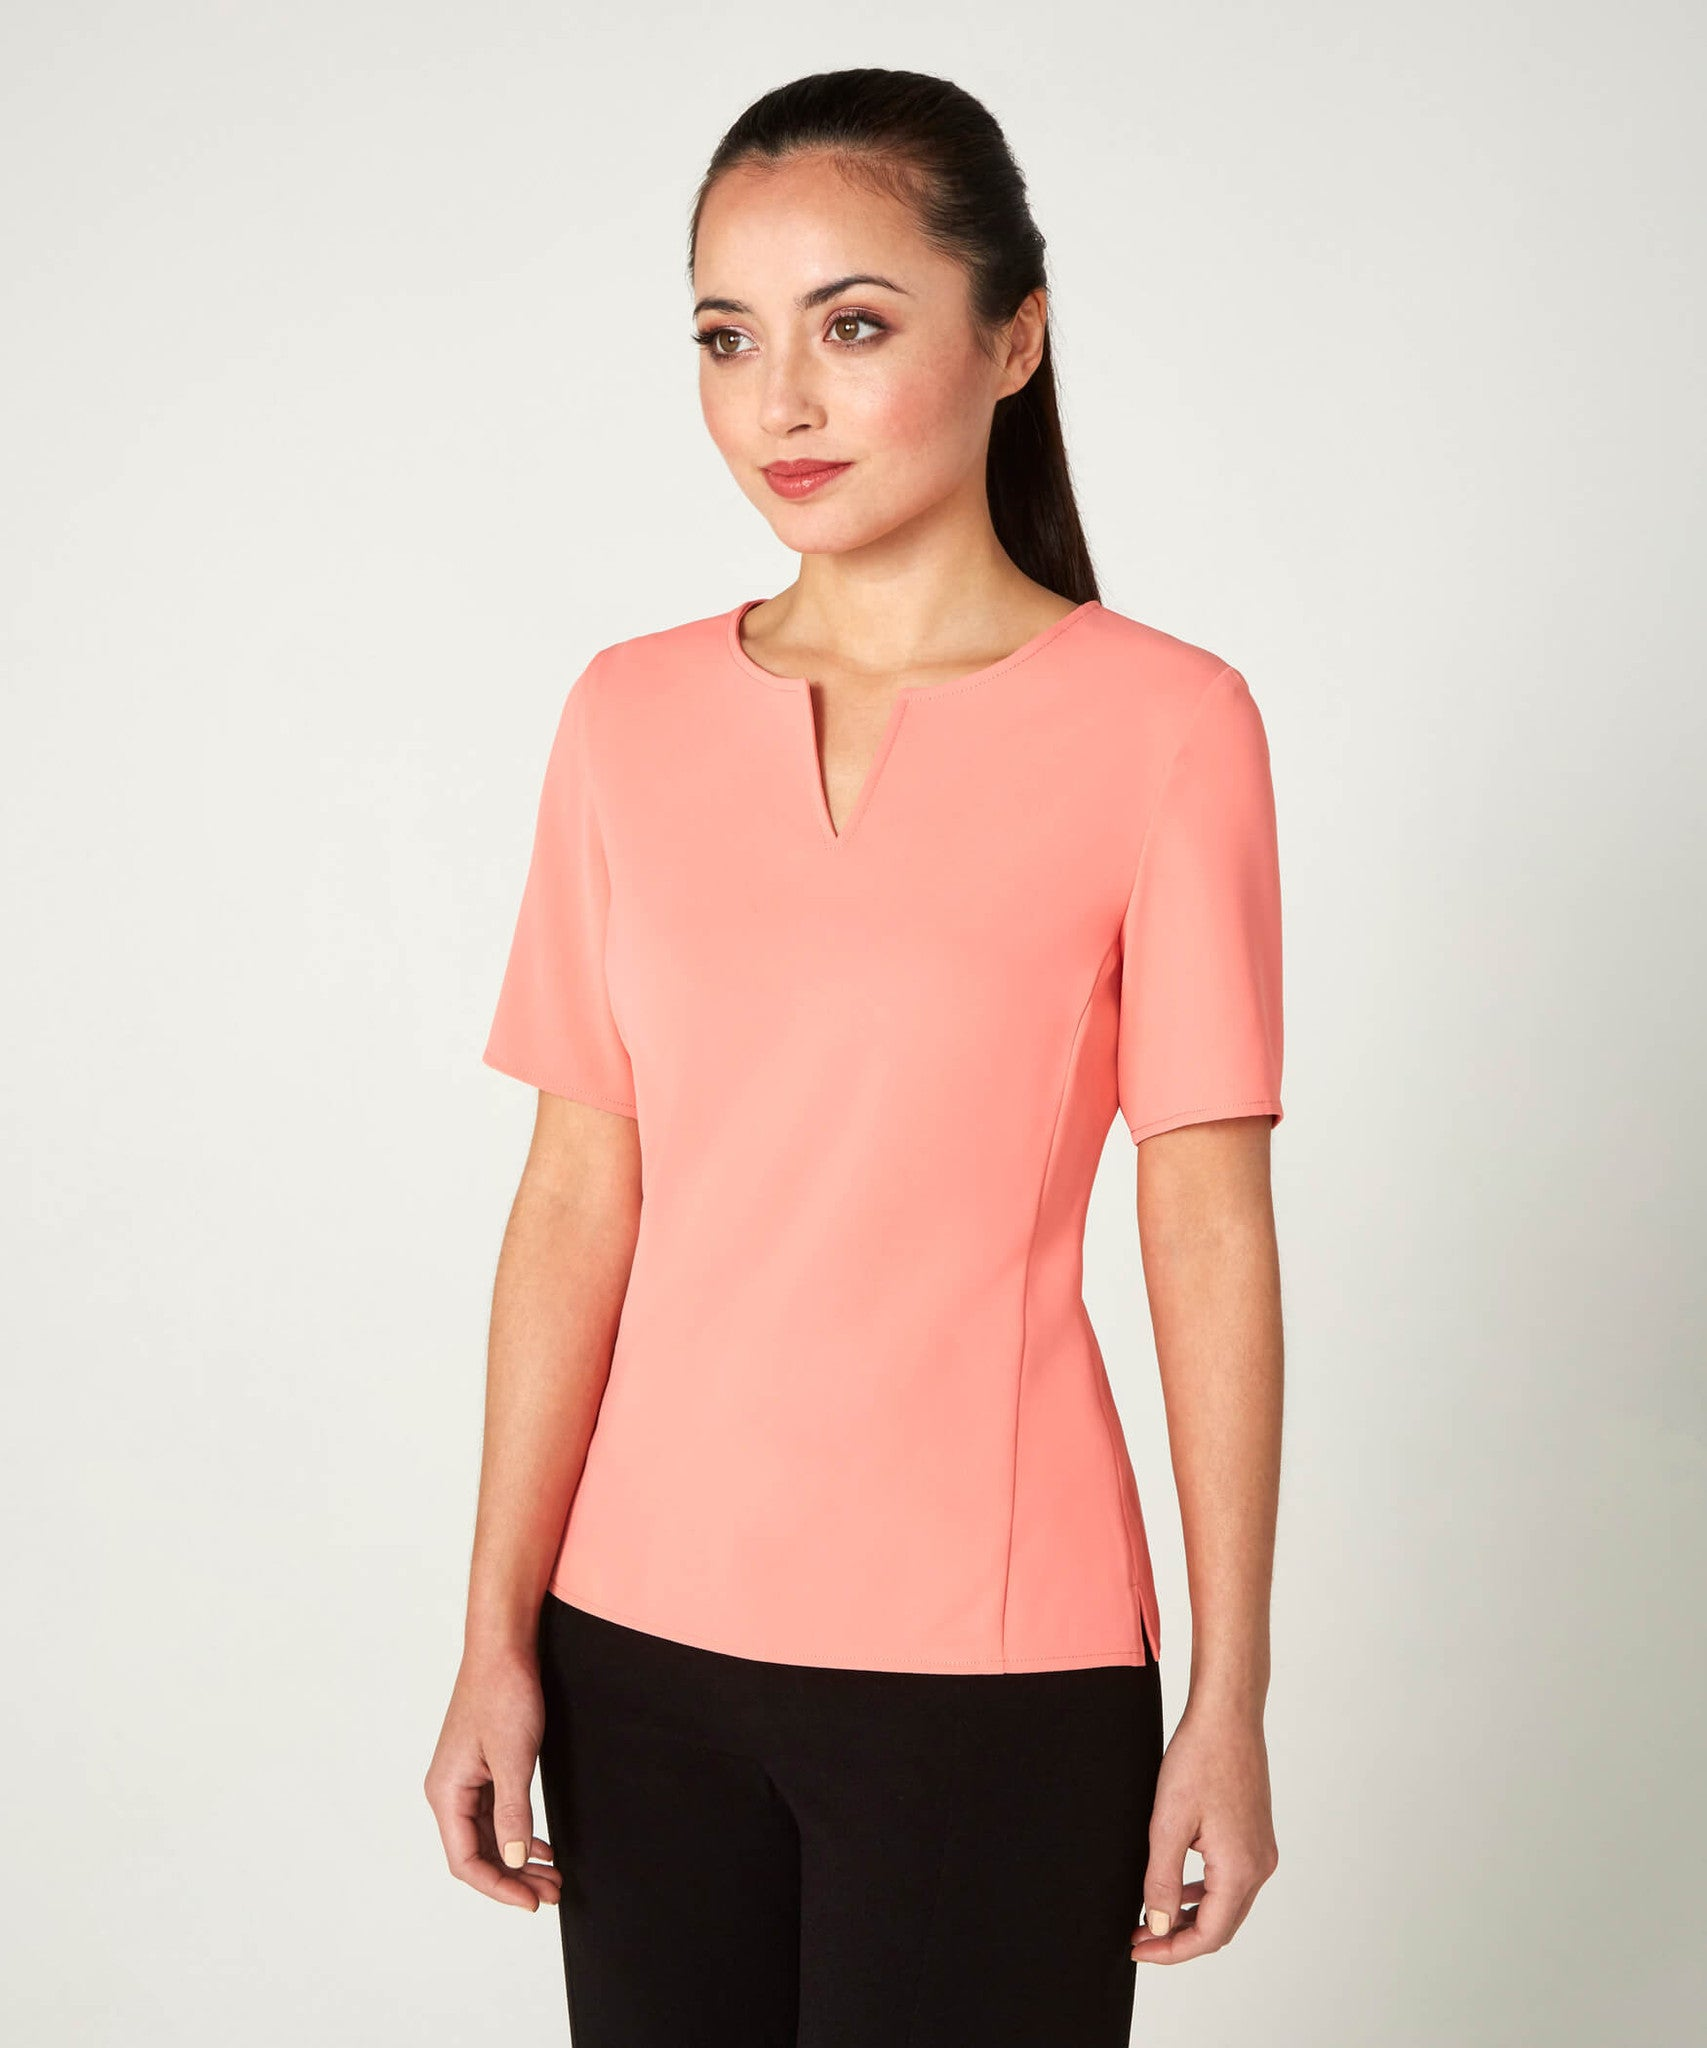 Petite Coral Notch Neck Top - Jennifer-Anne